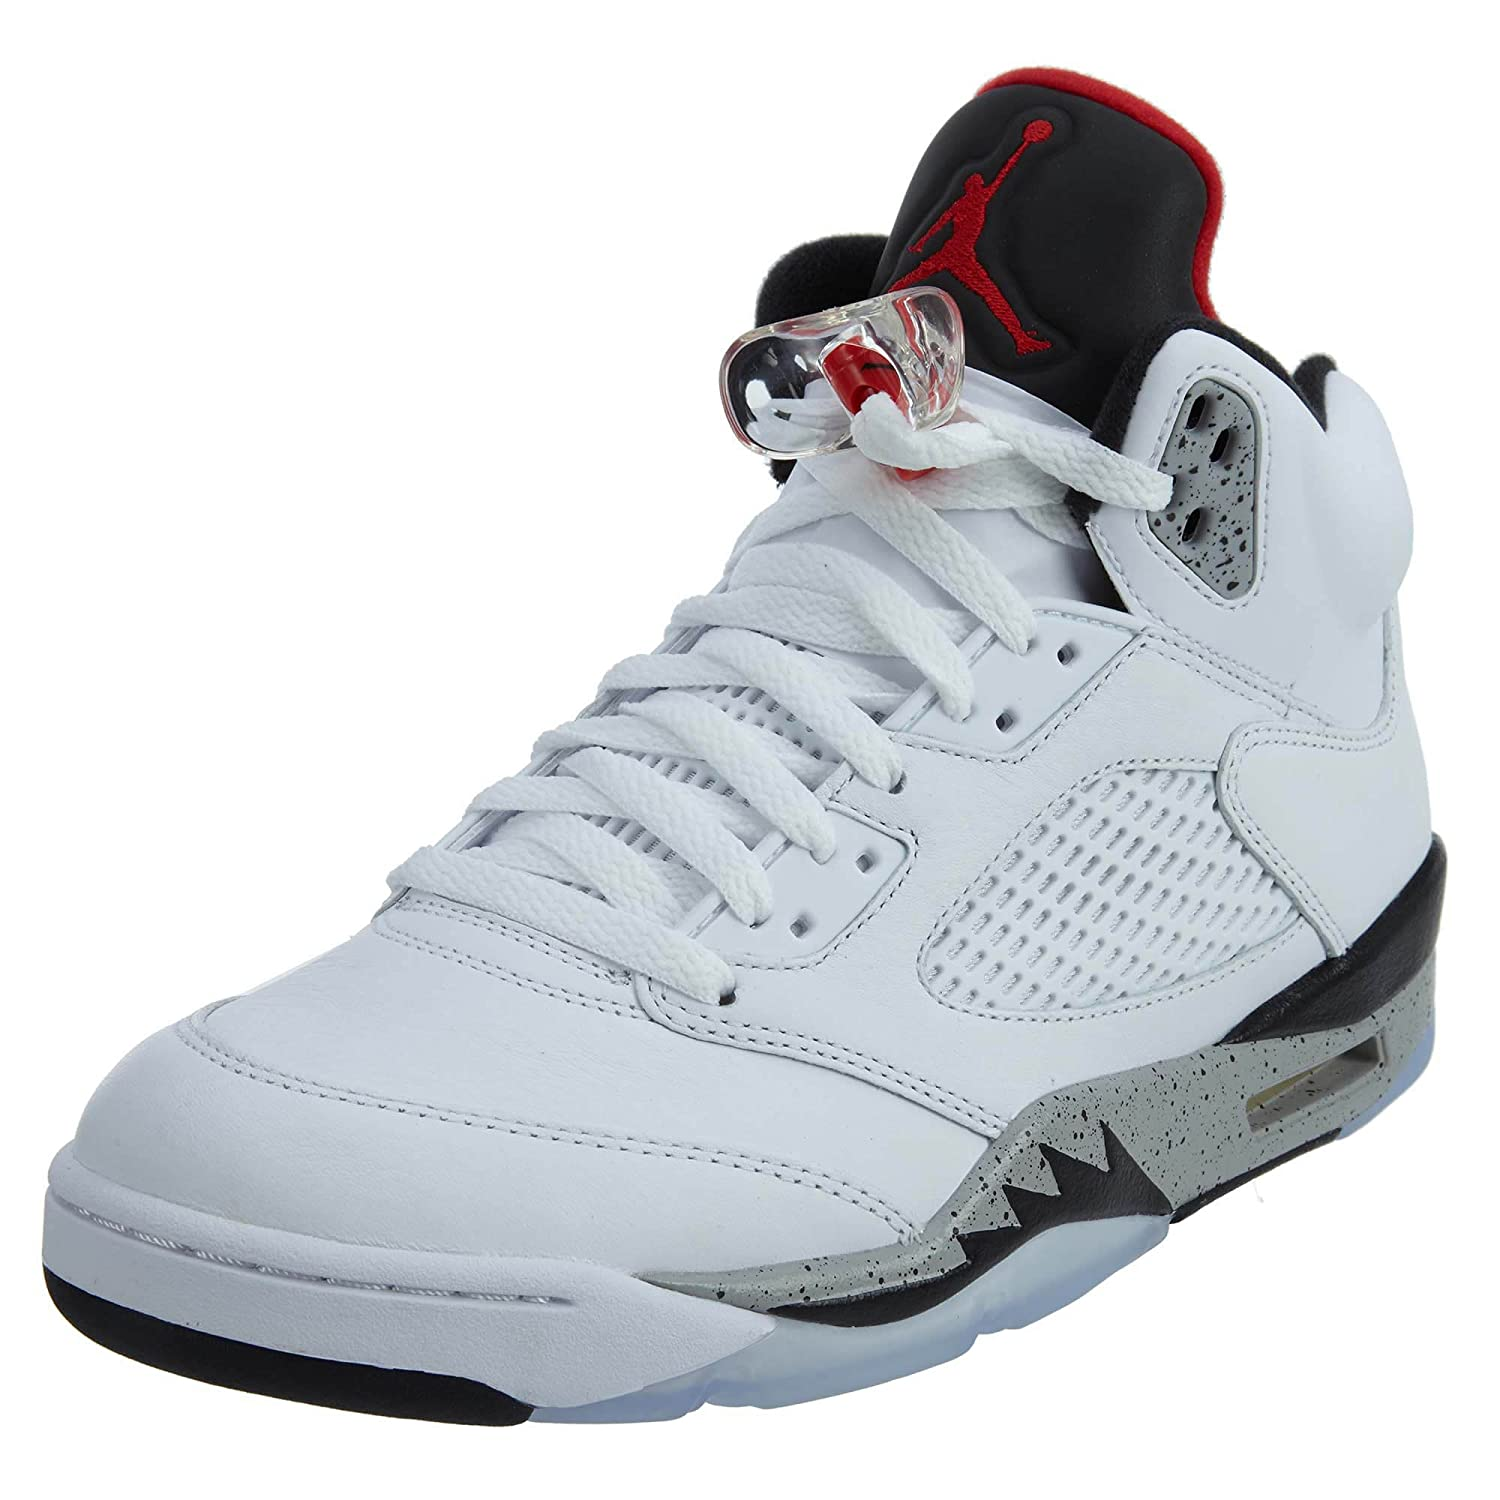 best website 18171 7a03c Amazon.com   Jordan Air 5 Retro Inchwhite Cement - White Mens   Basketball